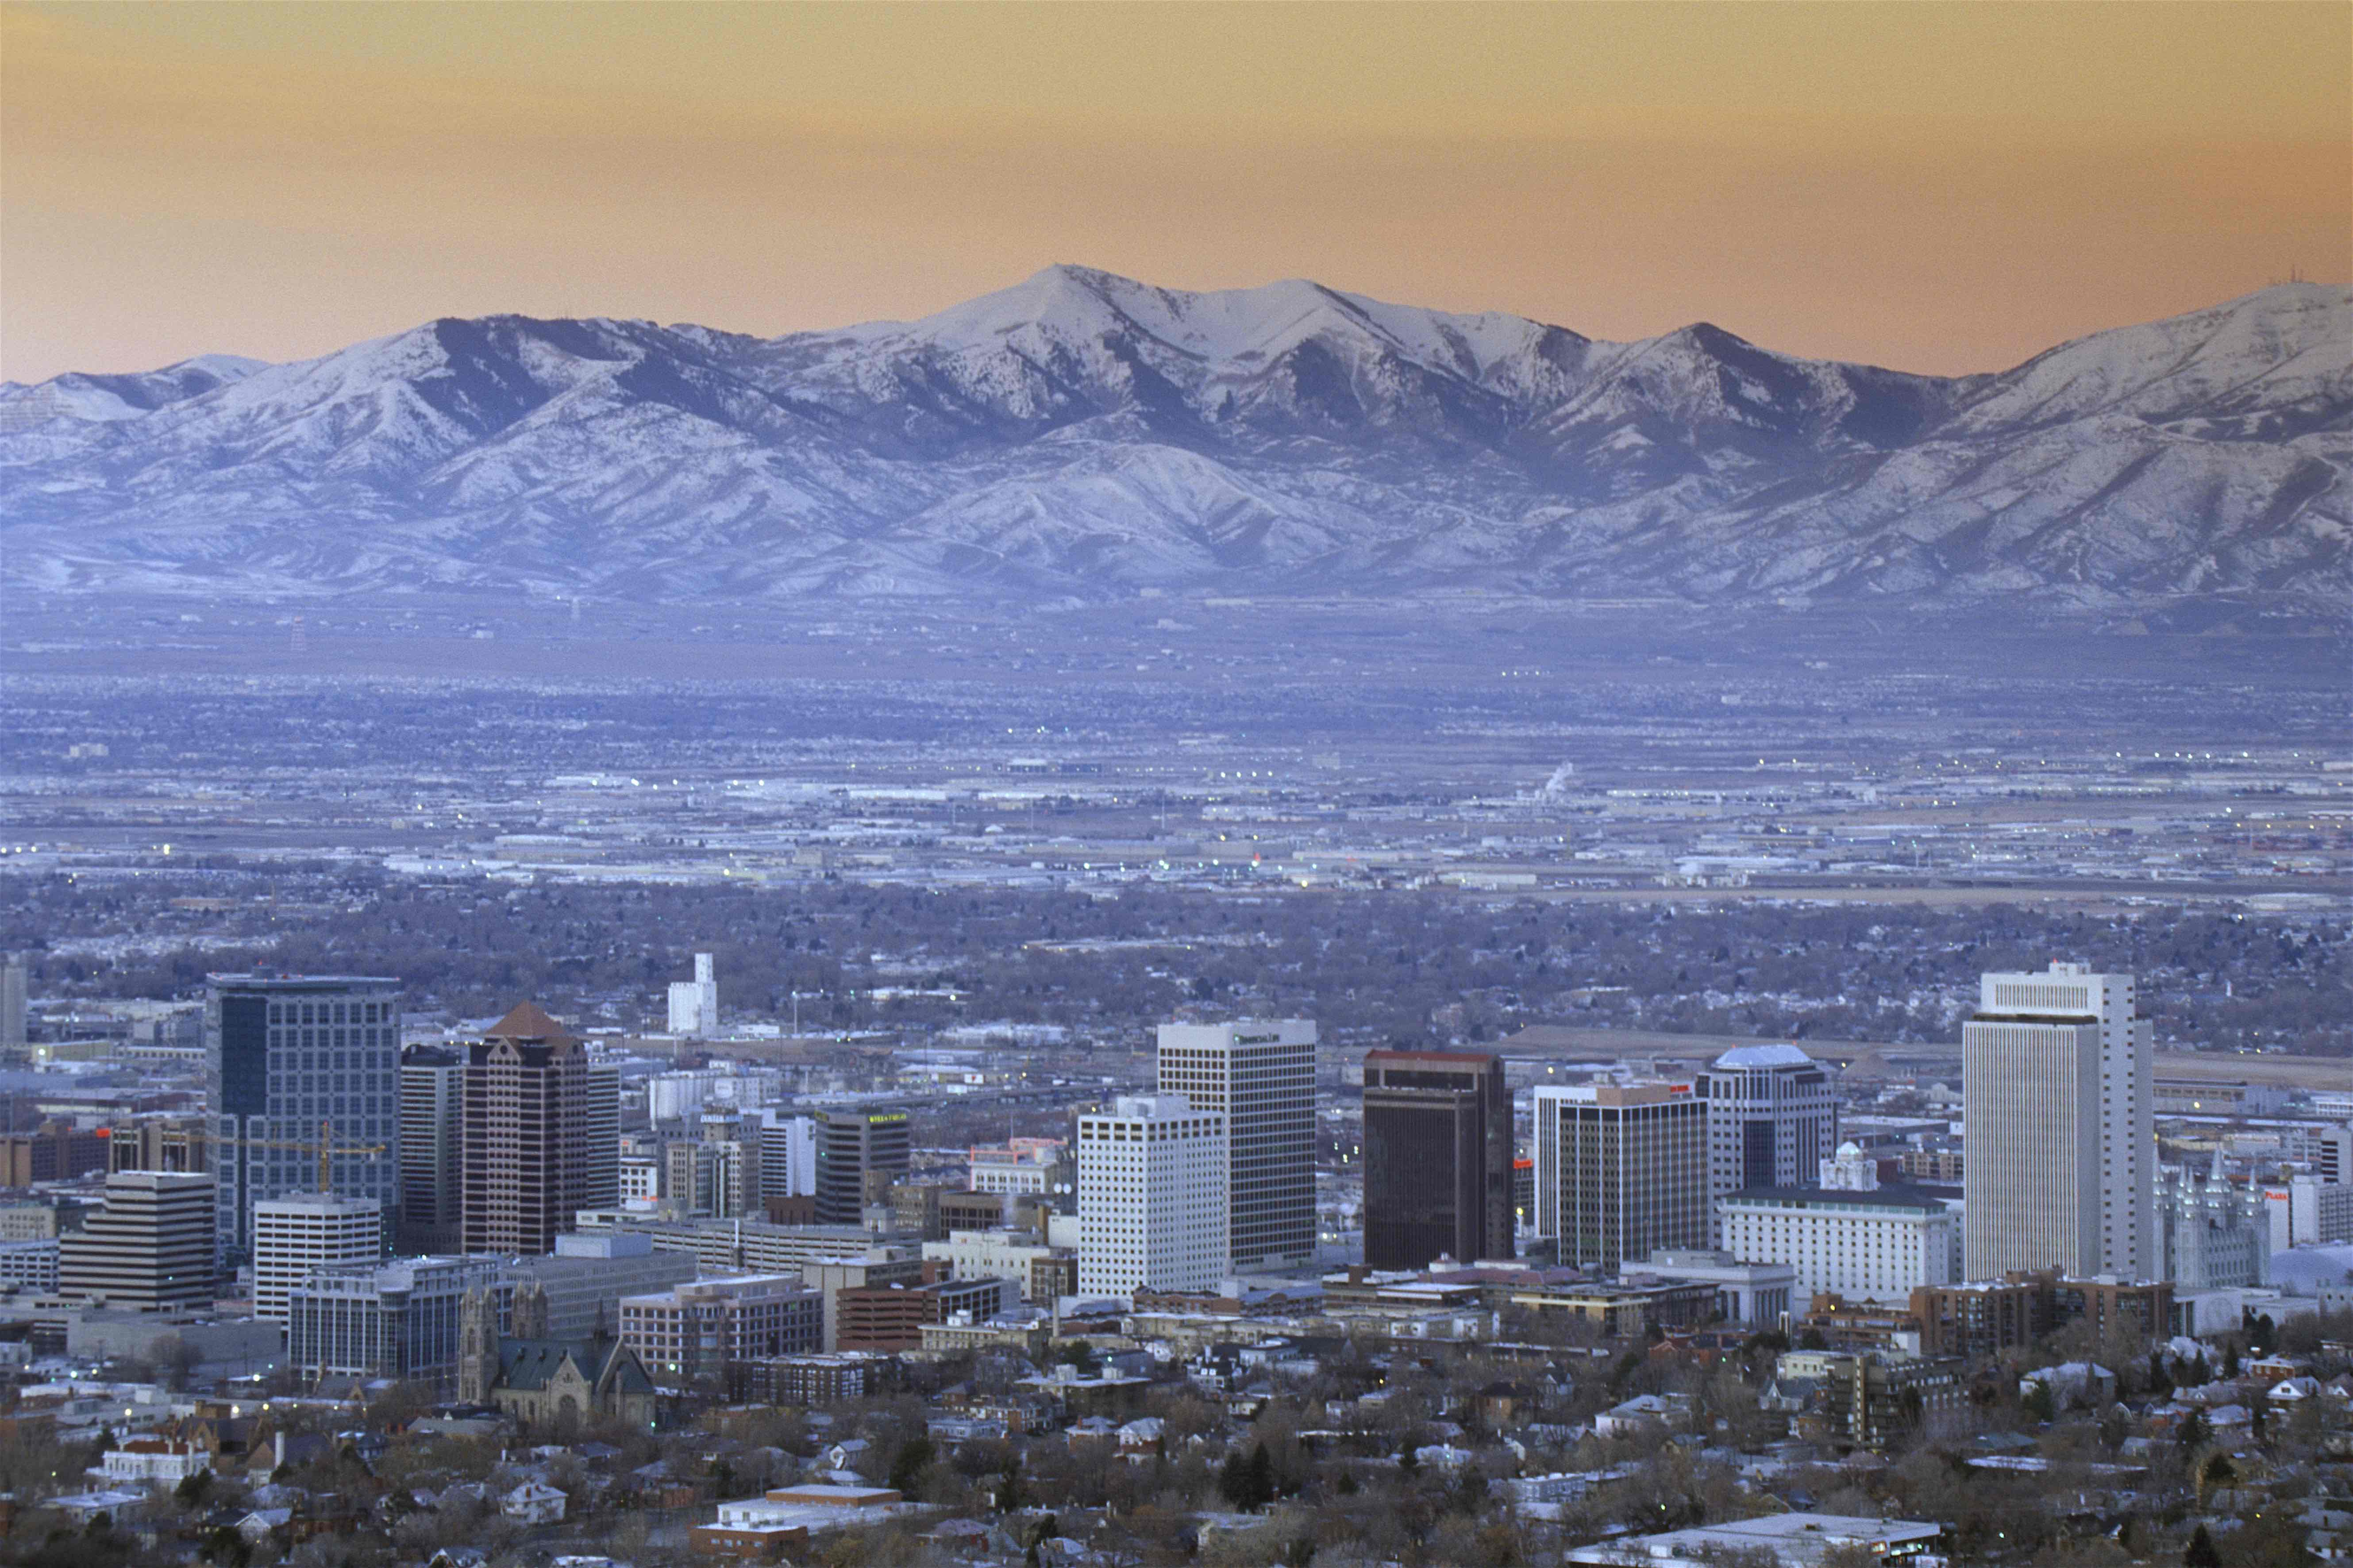 10.) Salt Lake City, UT